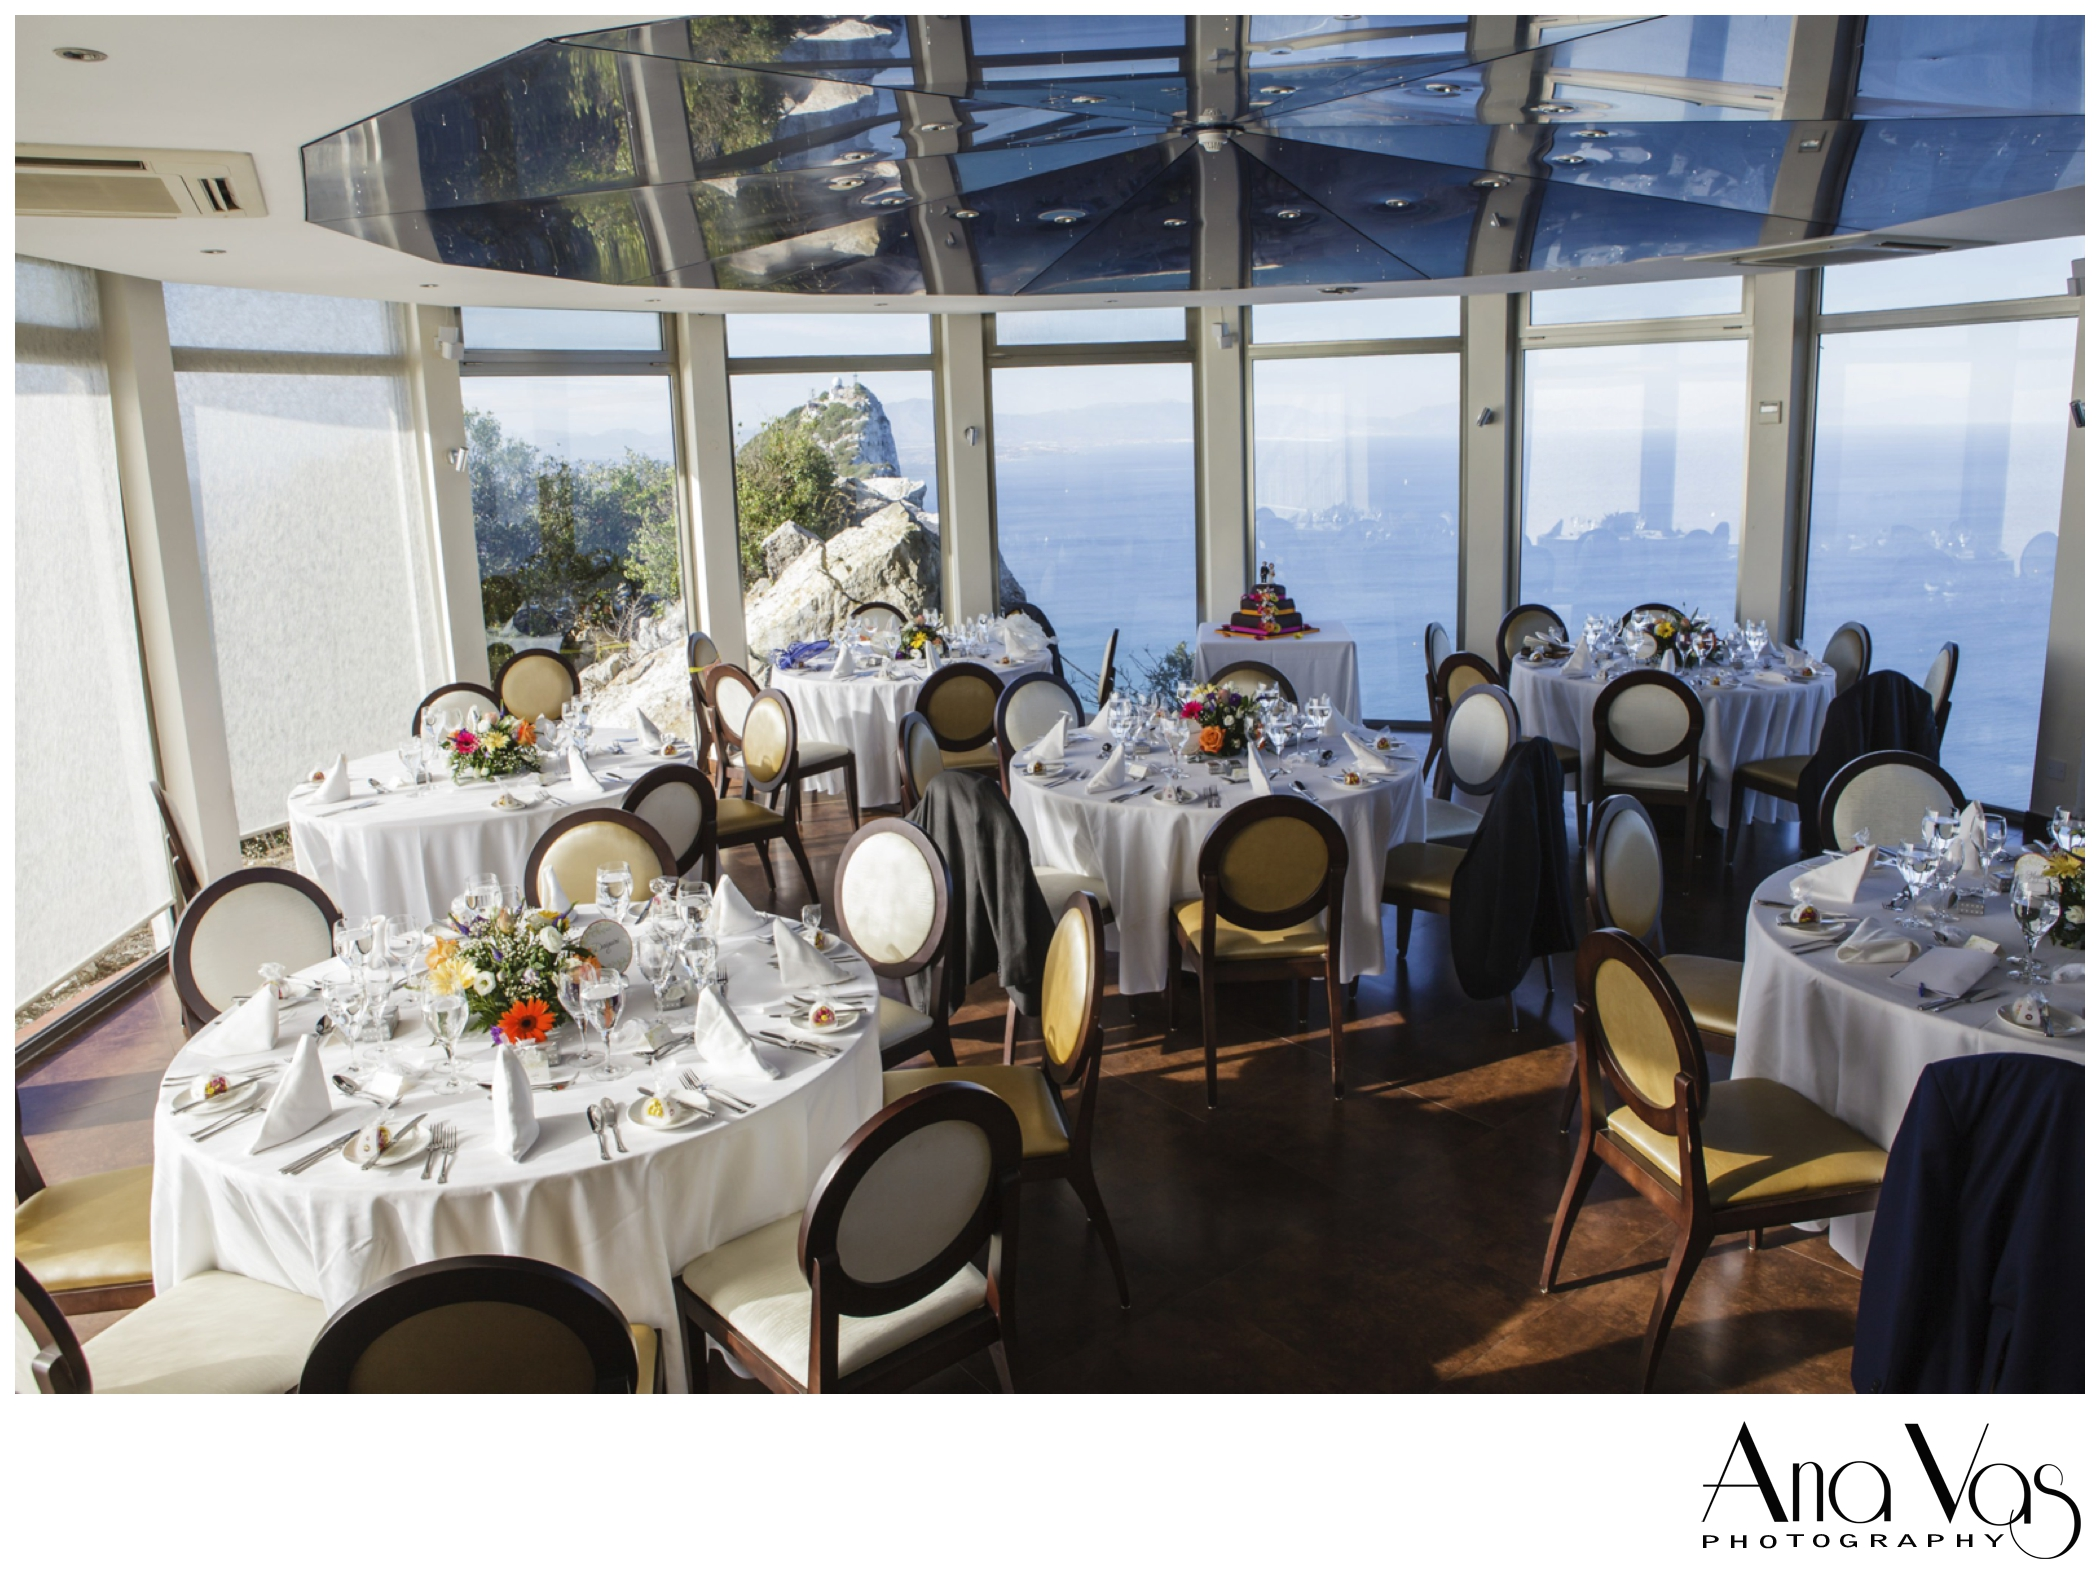 Wedding Reception at The Mons Calpe Suite, Gibraltar